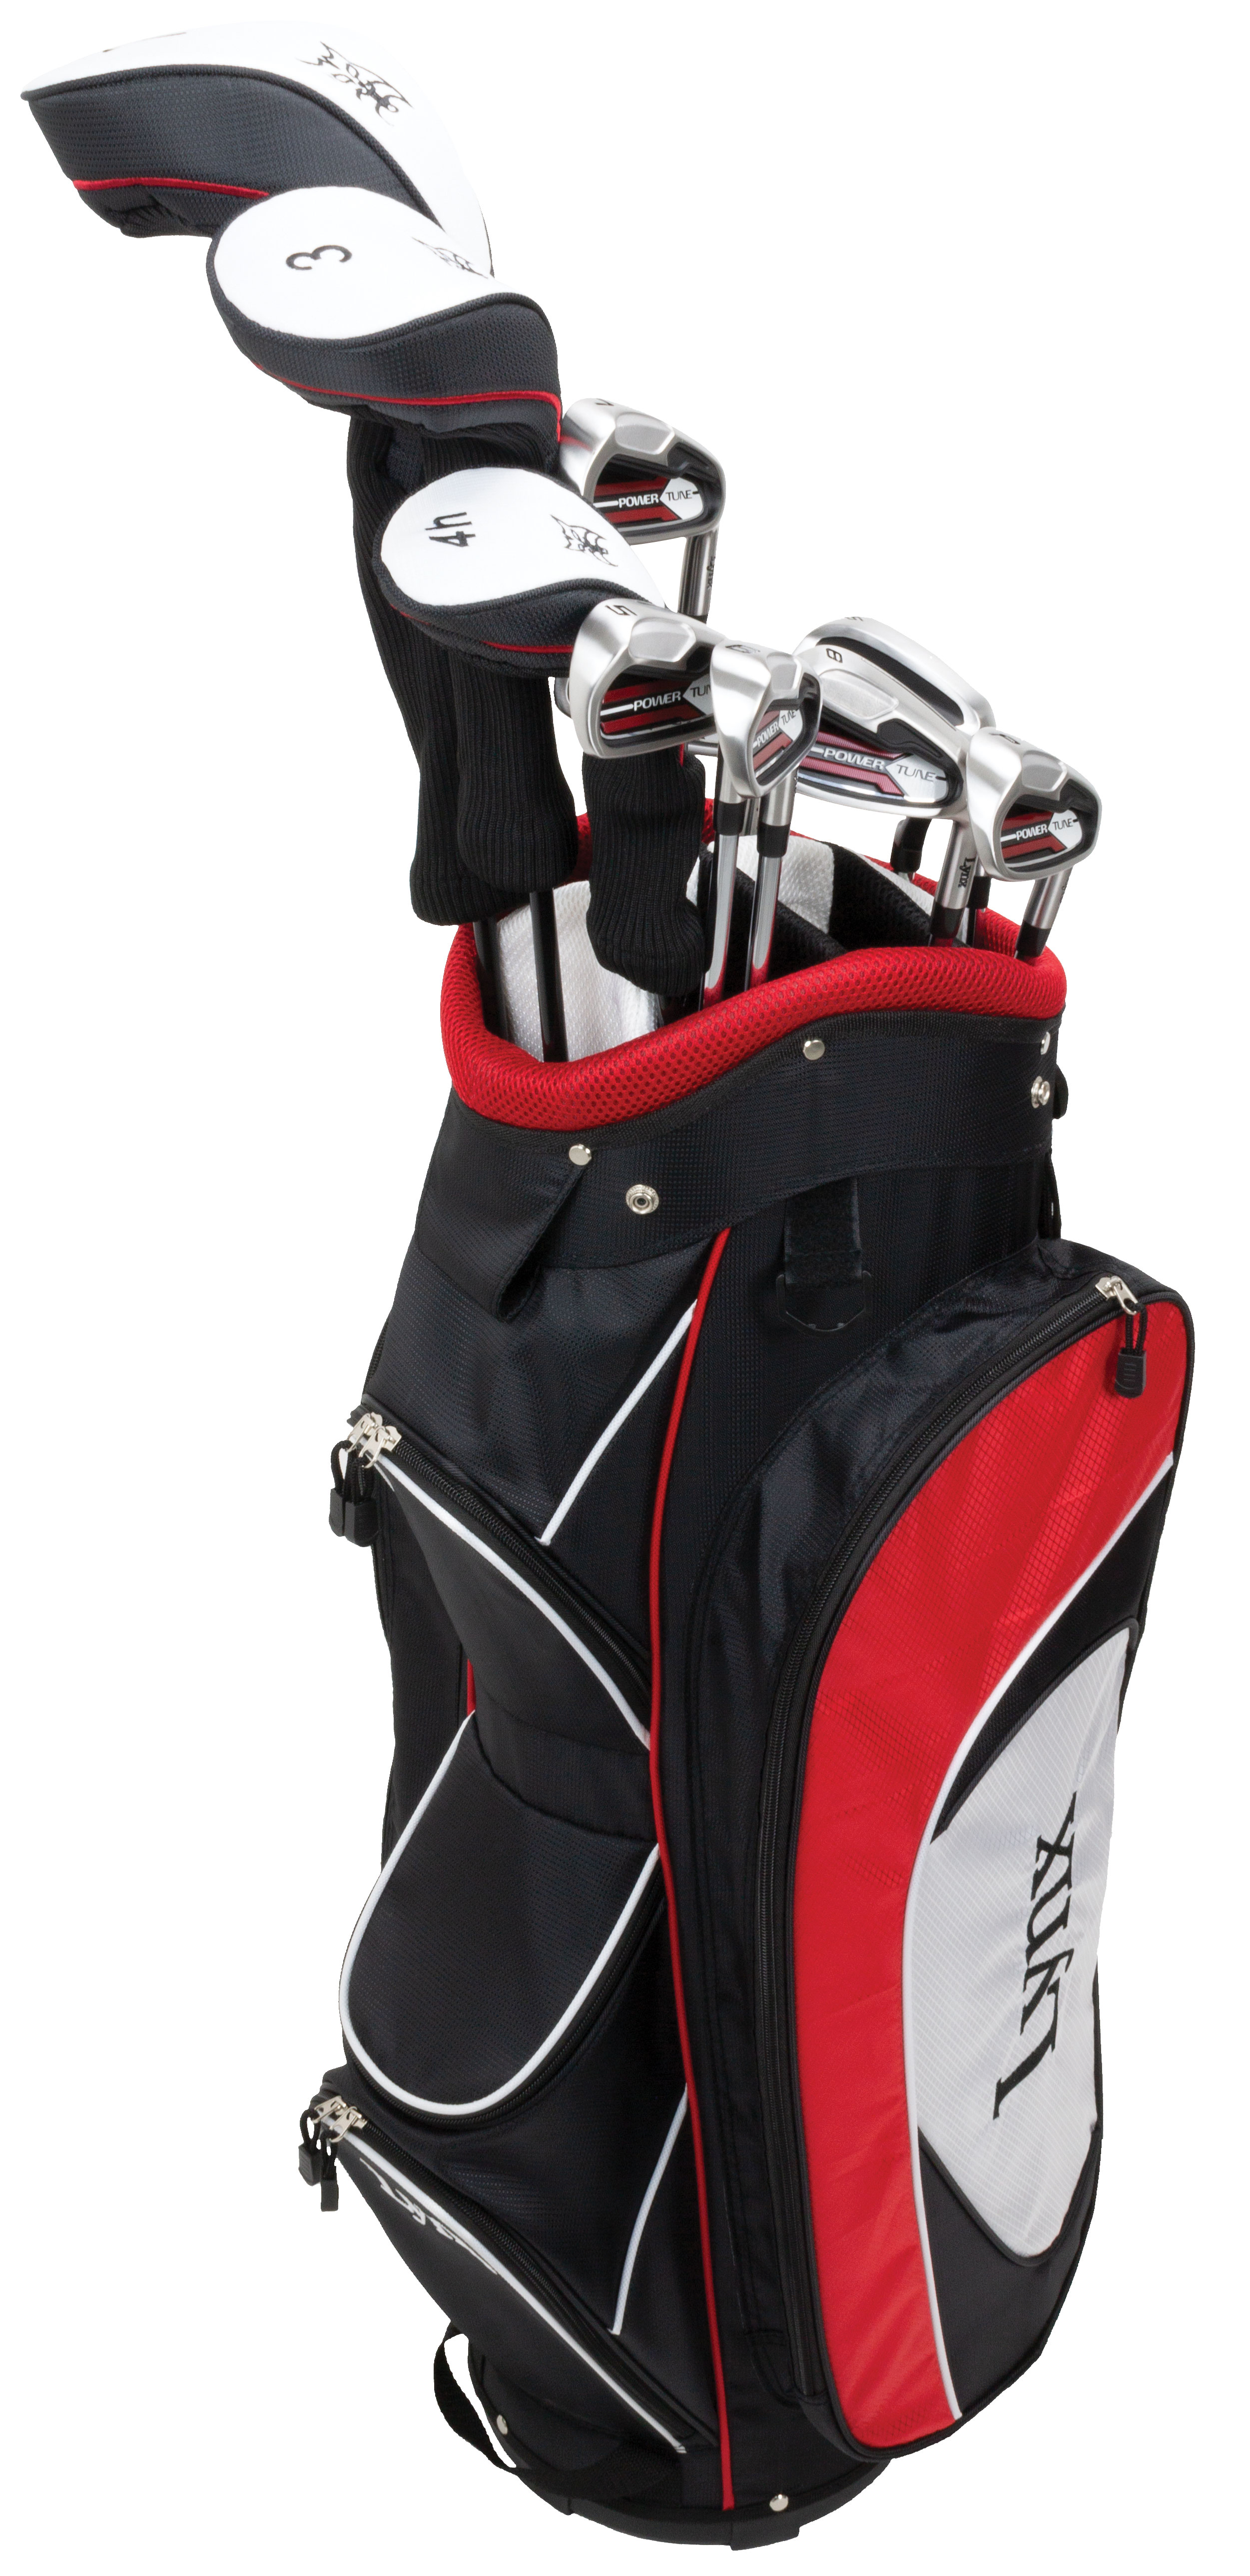 Lynx Power Tune Men's Complete 11-Piece Golf Club Set with Cart Bag